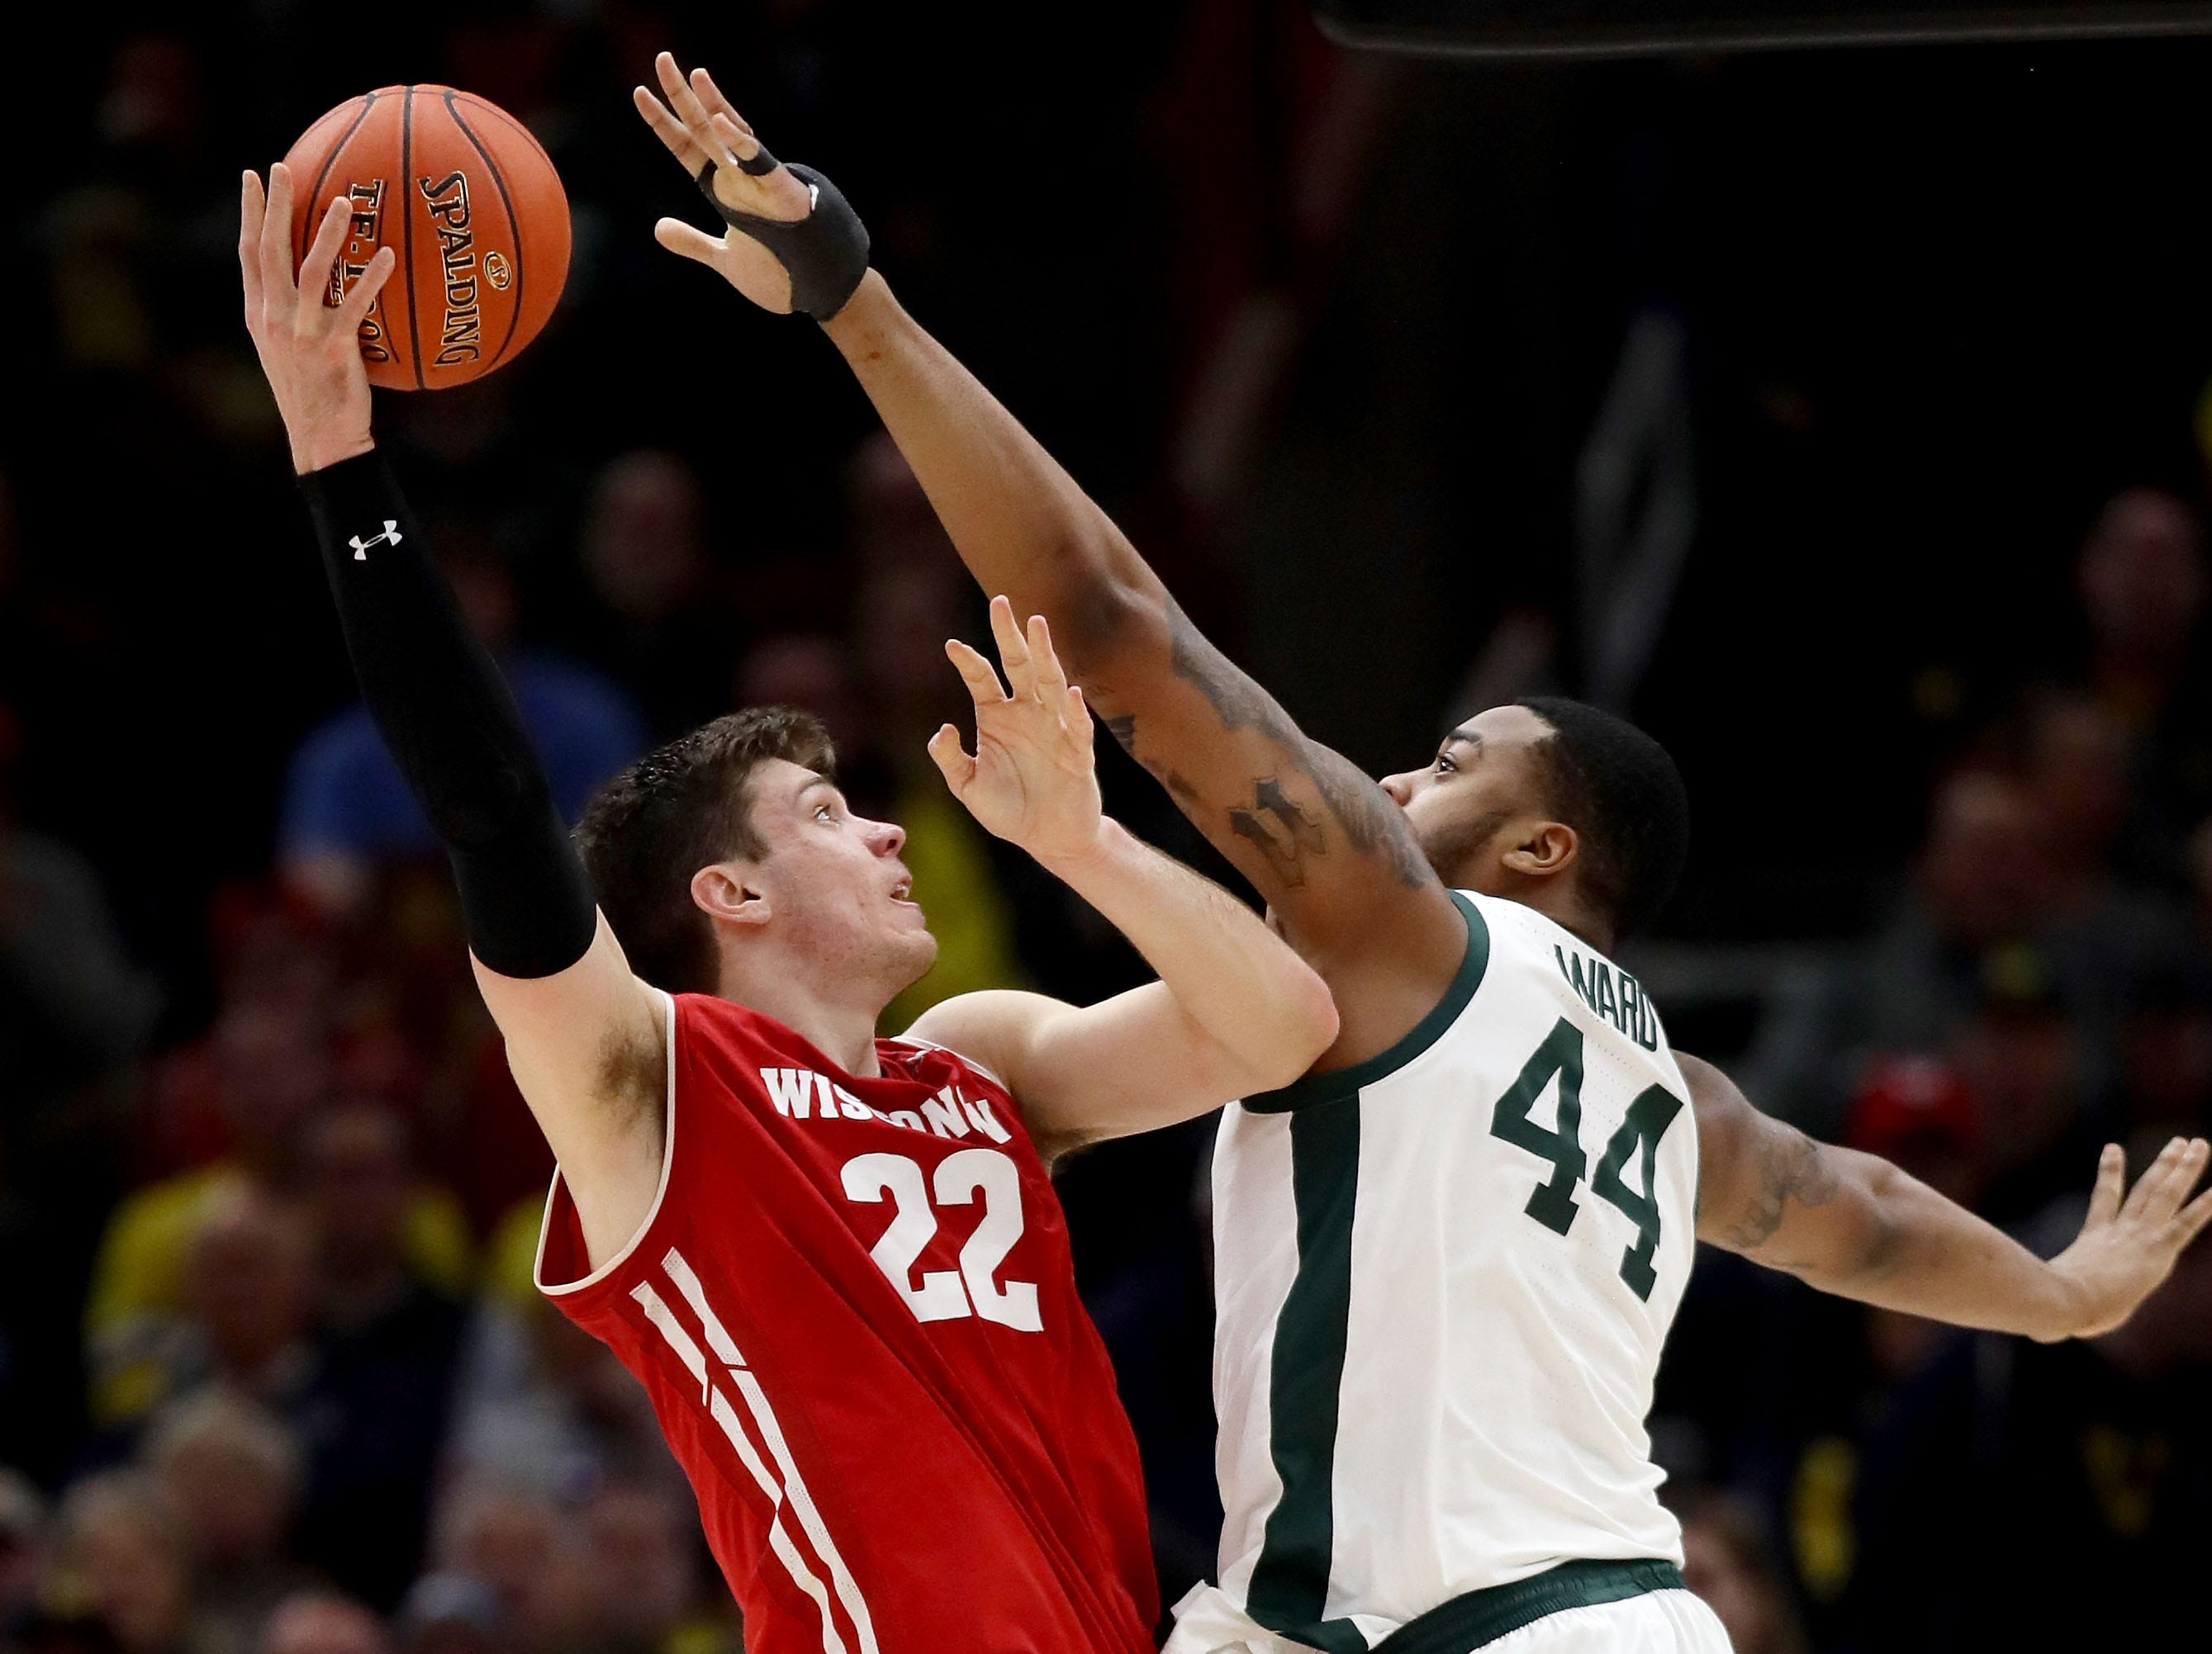 Ethan Happ #22 of the Wisconsin Badgers attempts a shot while being guarded by Nick Ward #44 of the Michigan State Spartans in the second half during the semifinals of the Big Ten Basketball Tournament at the United Center on March 16, 2019 in Chicago, Illinois.